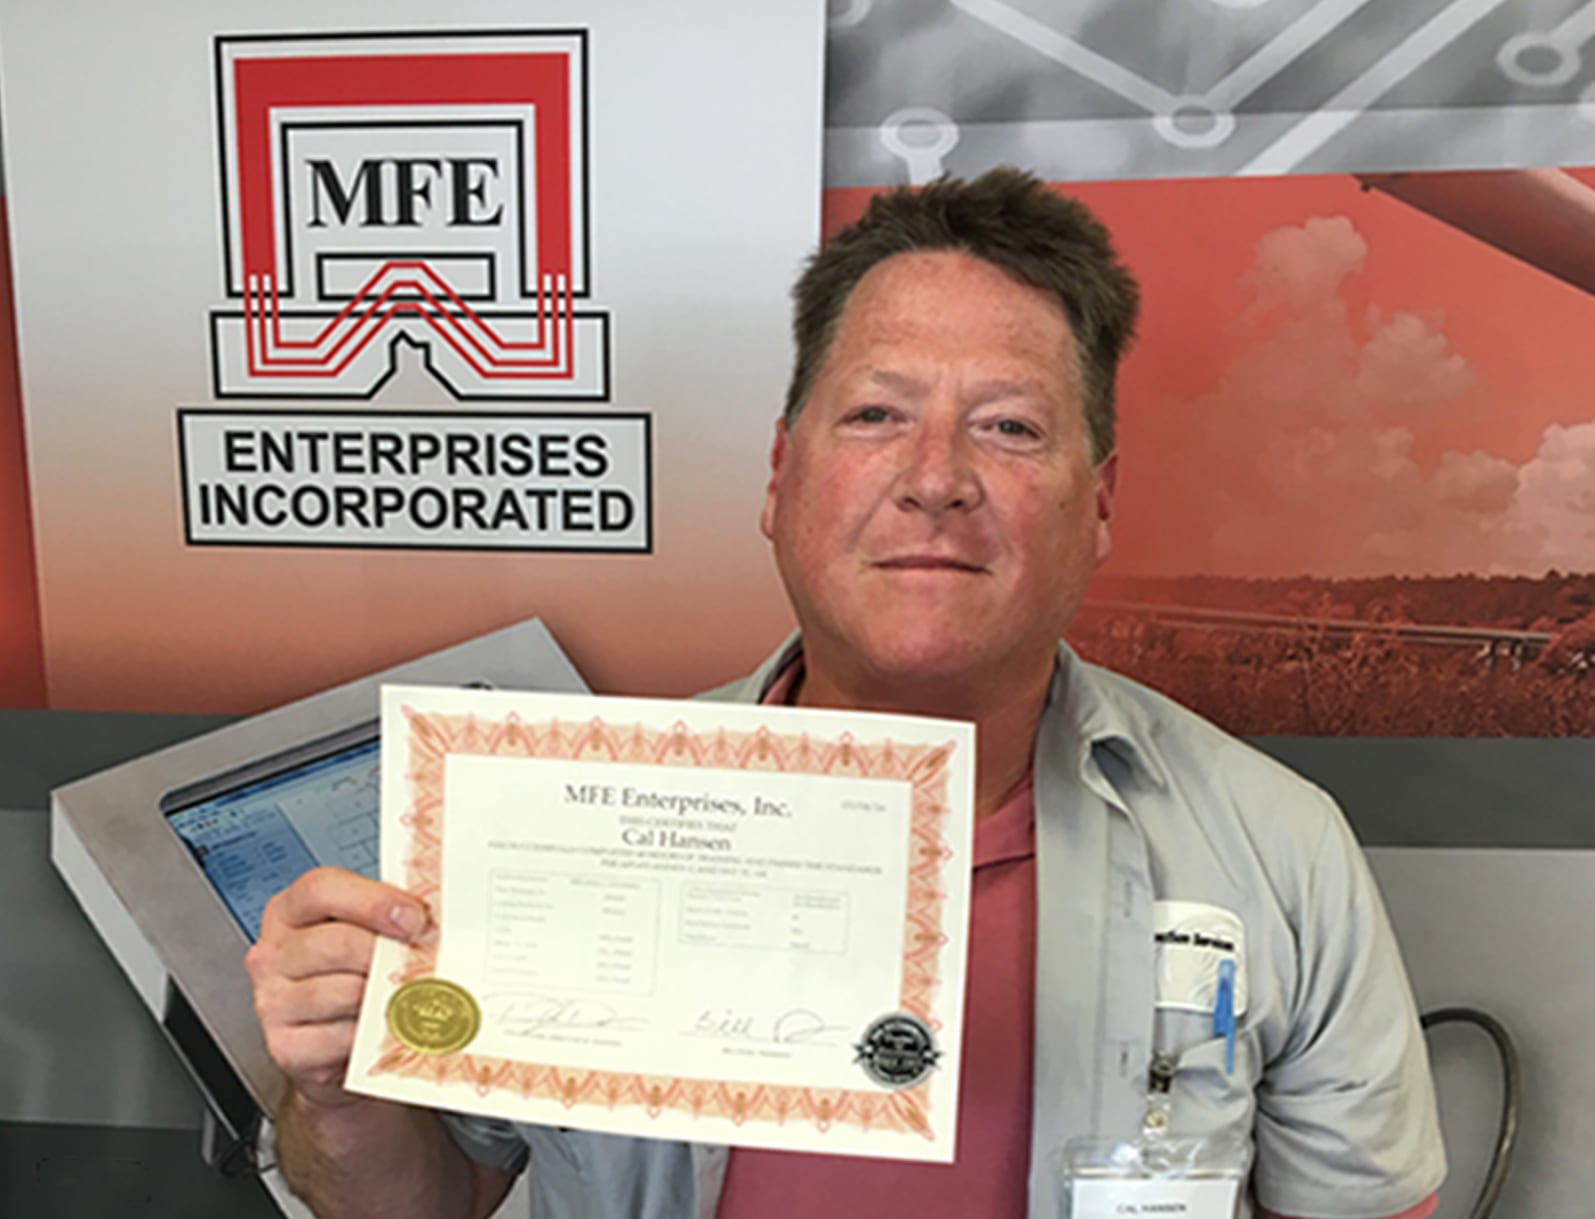 Mfl Training Do You Have Your Api 653 Annex G Certification Mfe